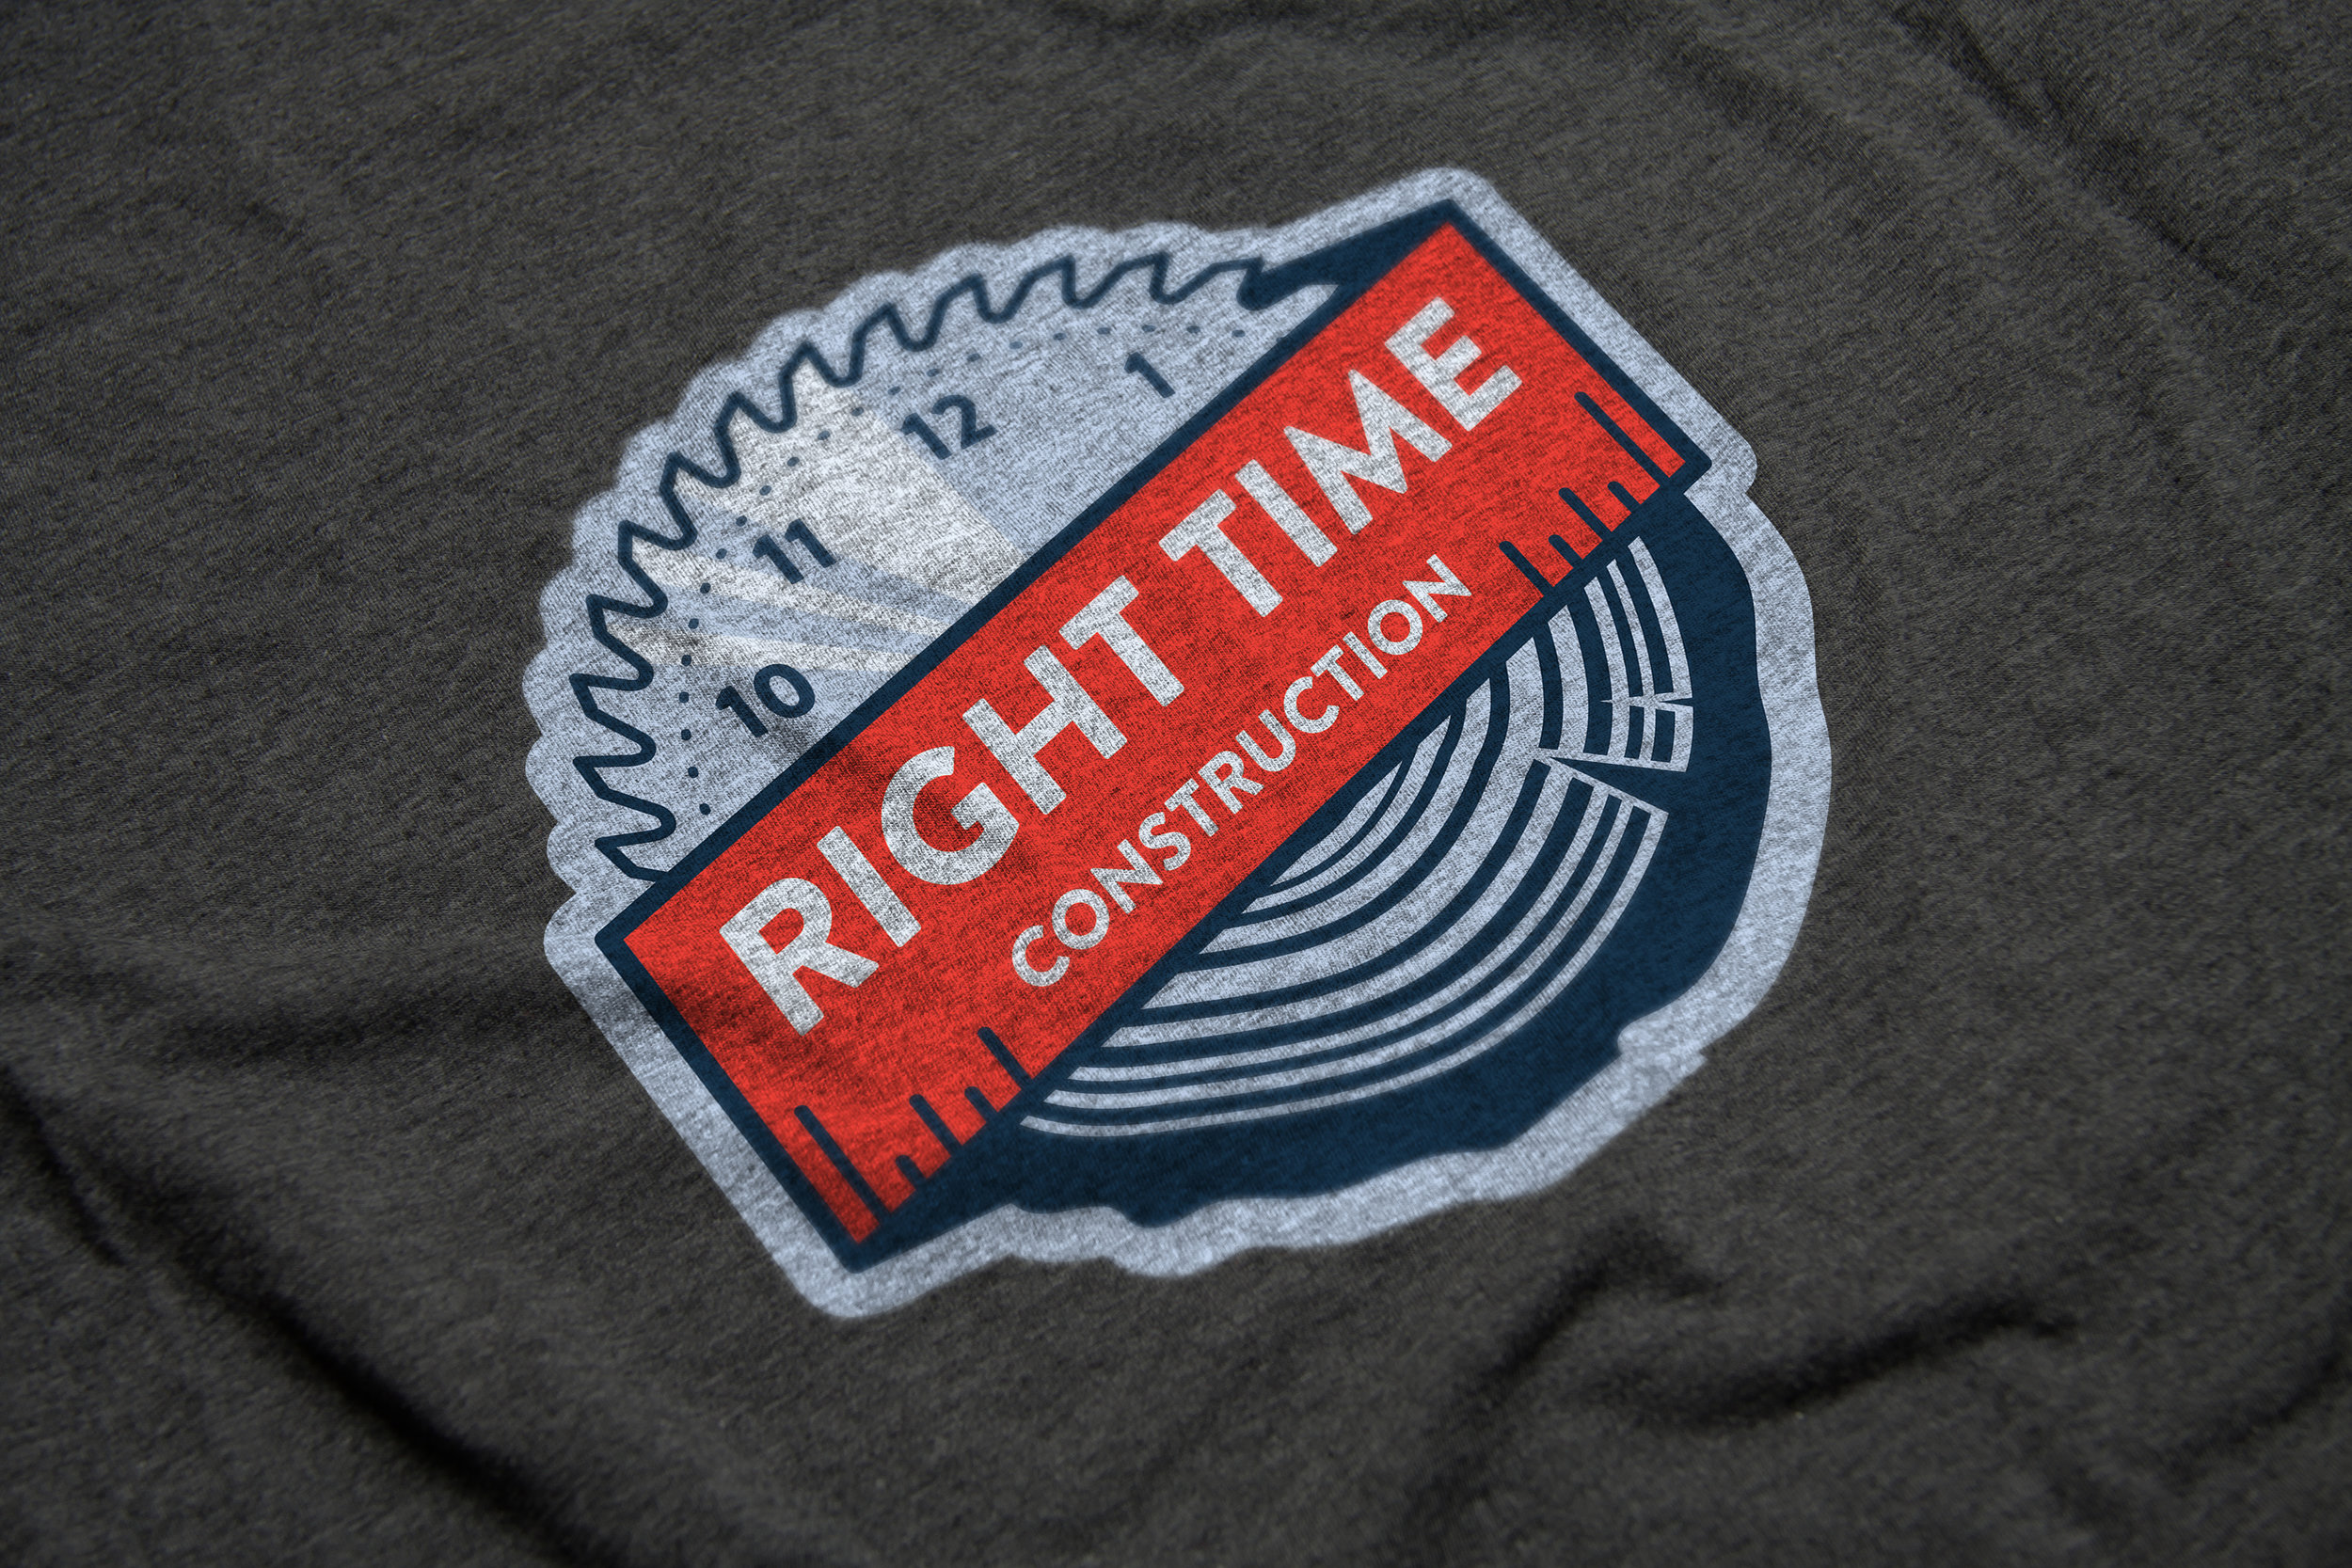 Right._Time_Construction_tshirt.jpg